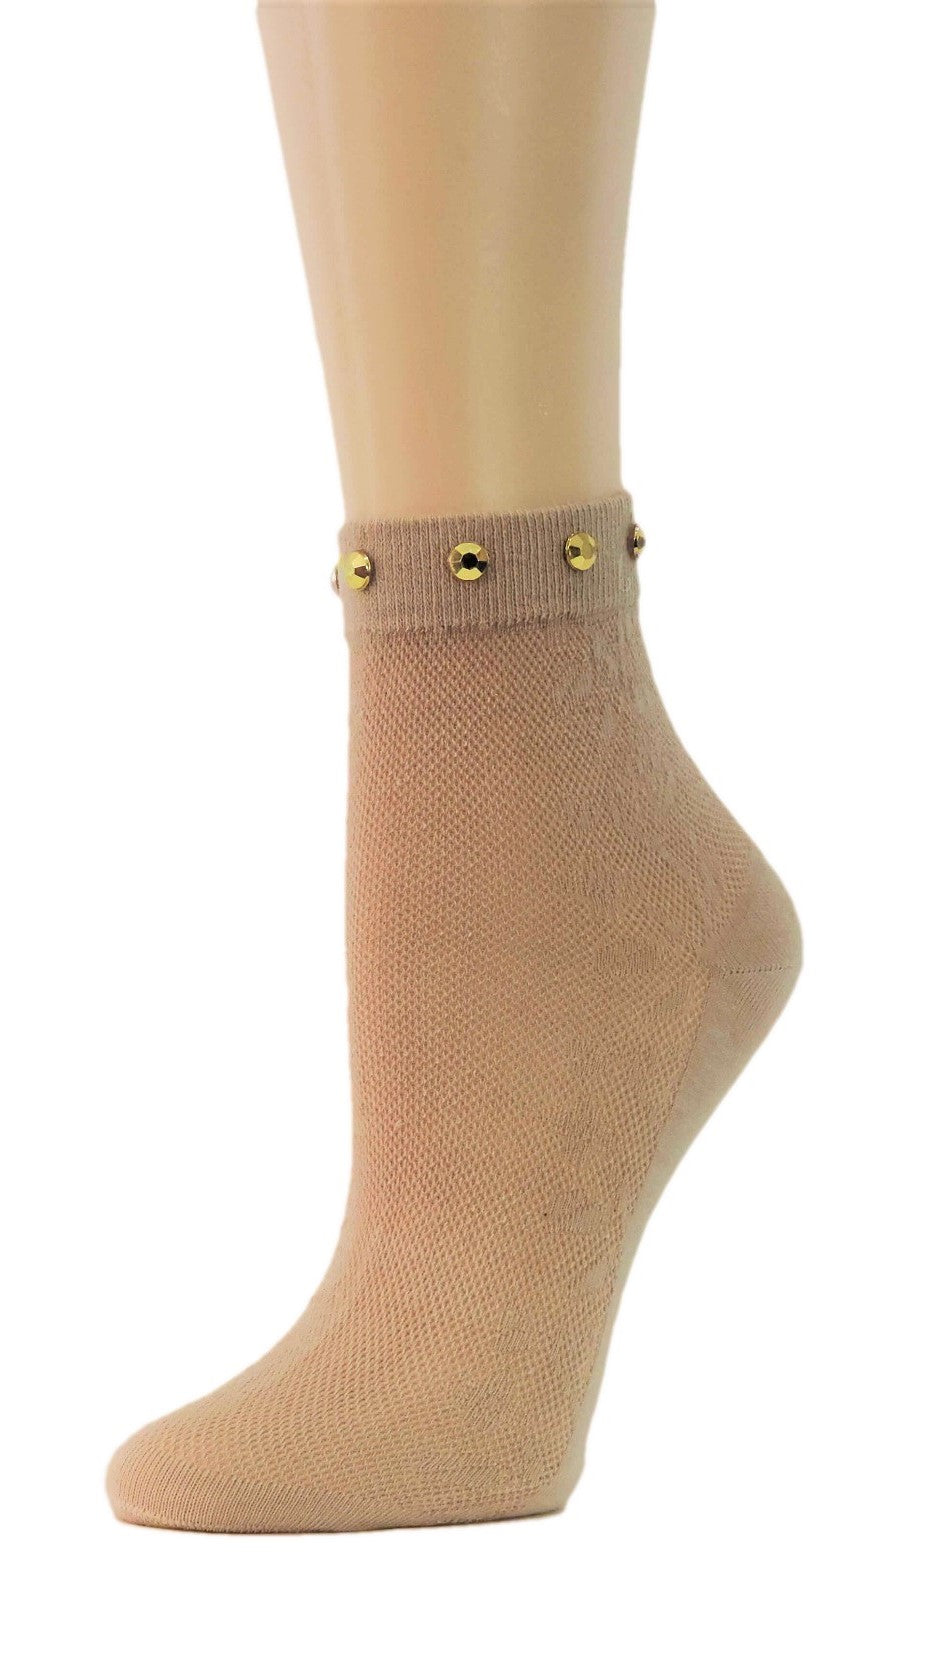 Beige Custom Sheer Socks with beads - Global Trendz Fashion®